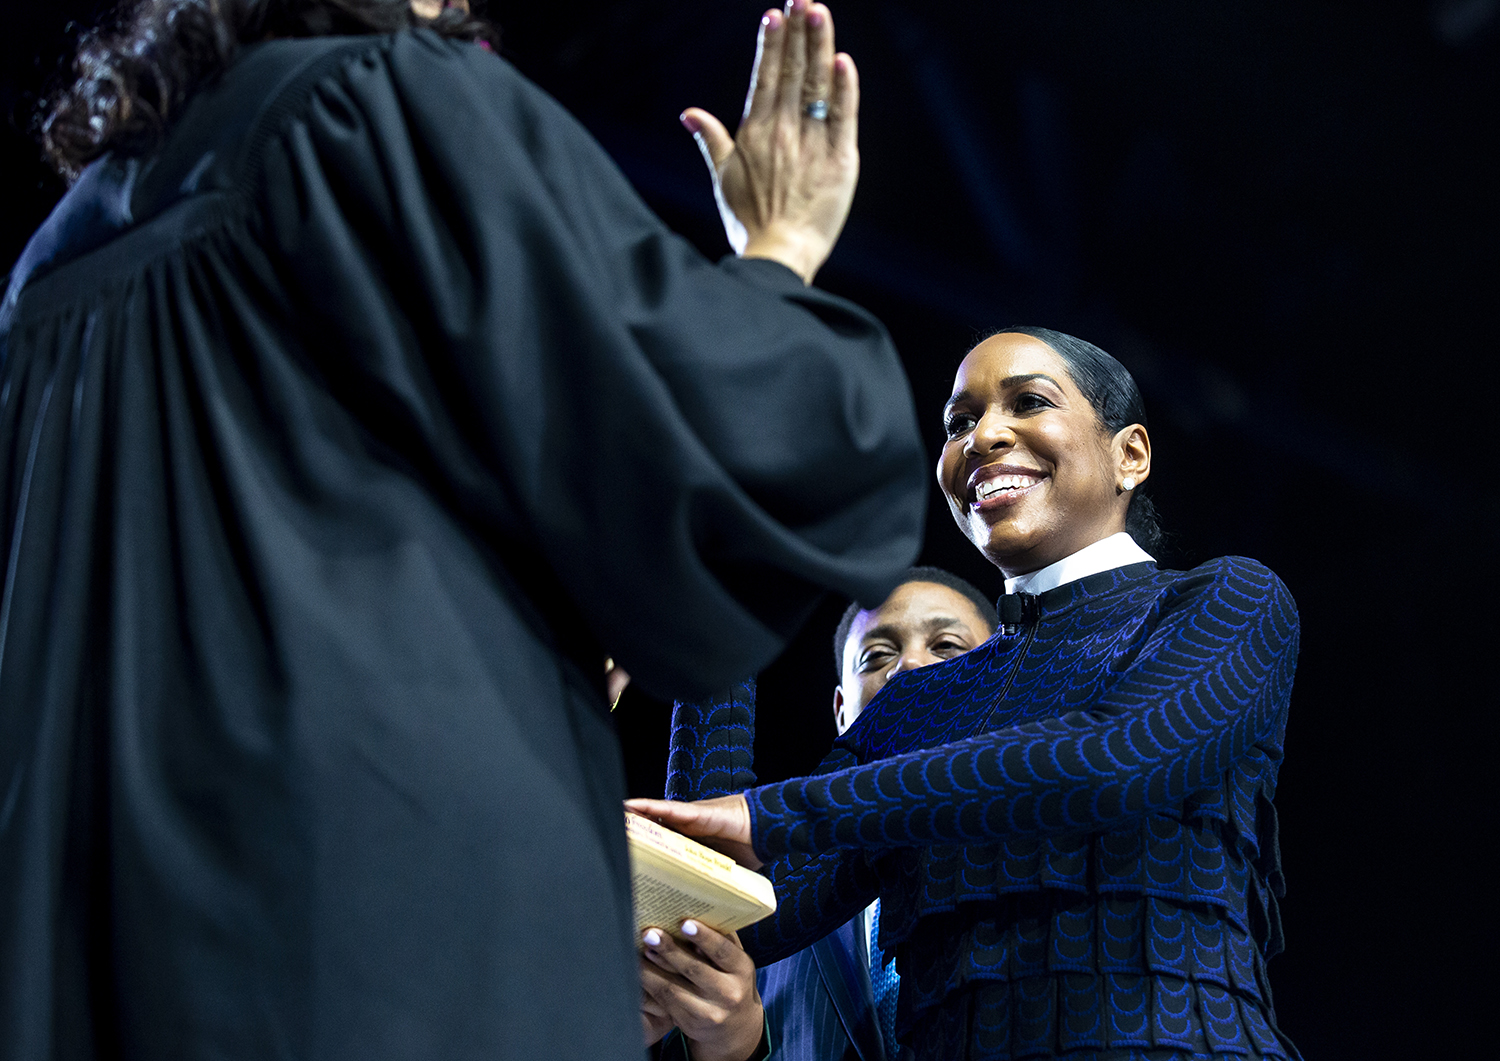 Juliana Stratton is administered the oath of office as lieutenant governor during the Illinois Inaugural Ceremony Monday, Jan. 14, 2019 a the Bank of Springfield Center in Springfield, Ill. [Rich Saal/The State Journal-Register]